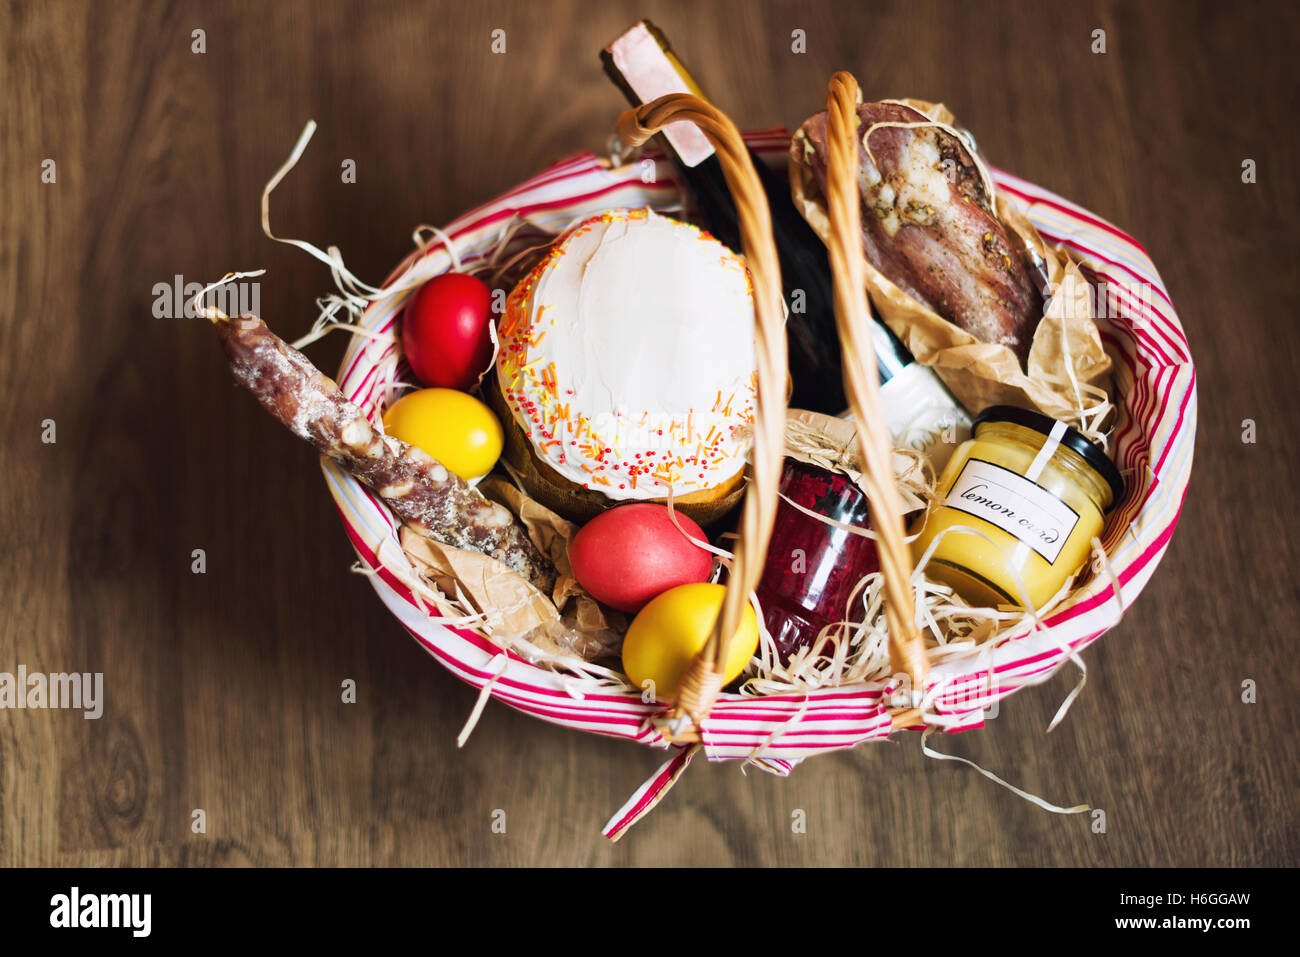 Colorful easter eggs in a basket with cake red wine hamon or colorful easter eggs in a basket with cake red wine hamon or jerky and dry smoked sausage on wooden background negle Images